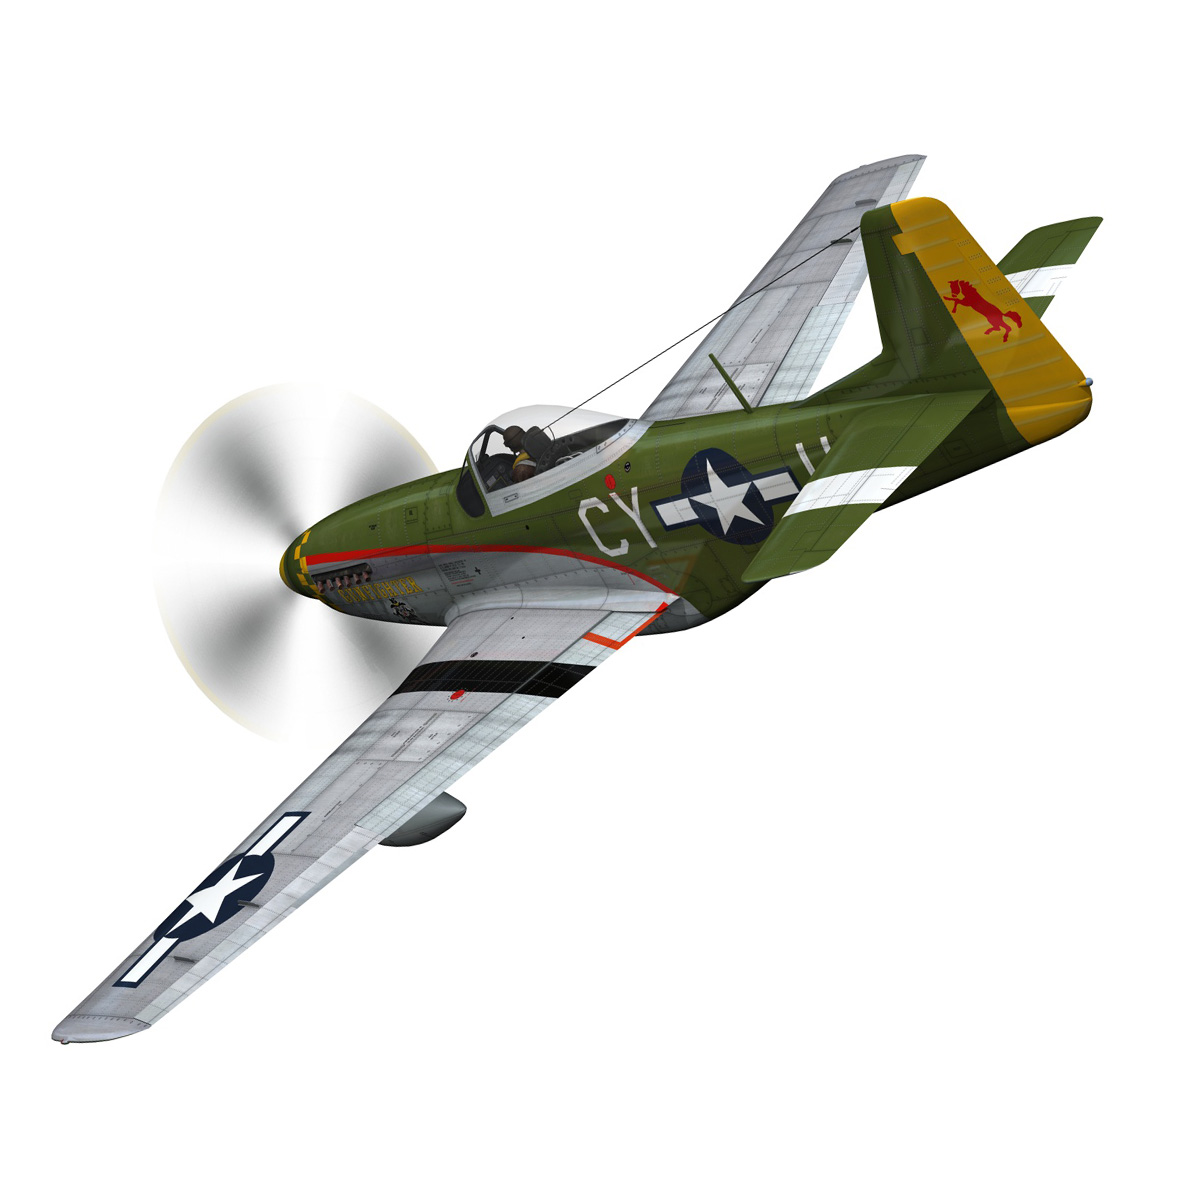 north american p-51d mustang – gunfighter 3d model fbx c4d lwo obj 269572